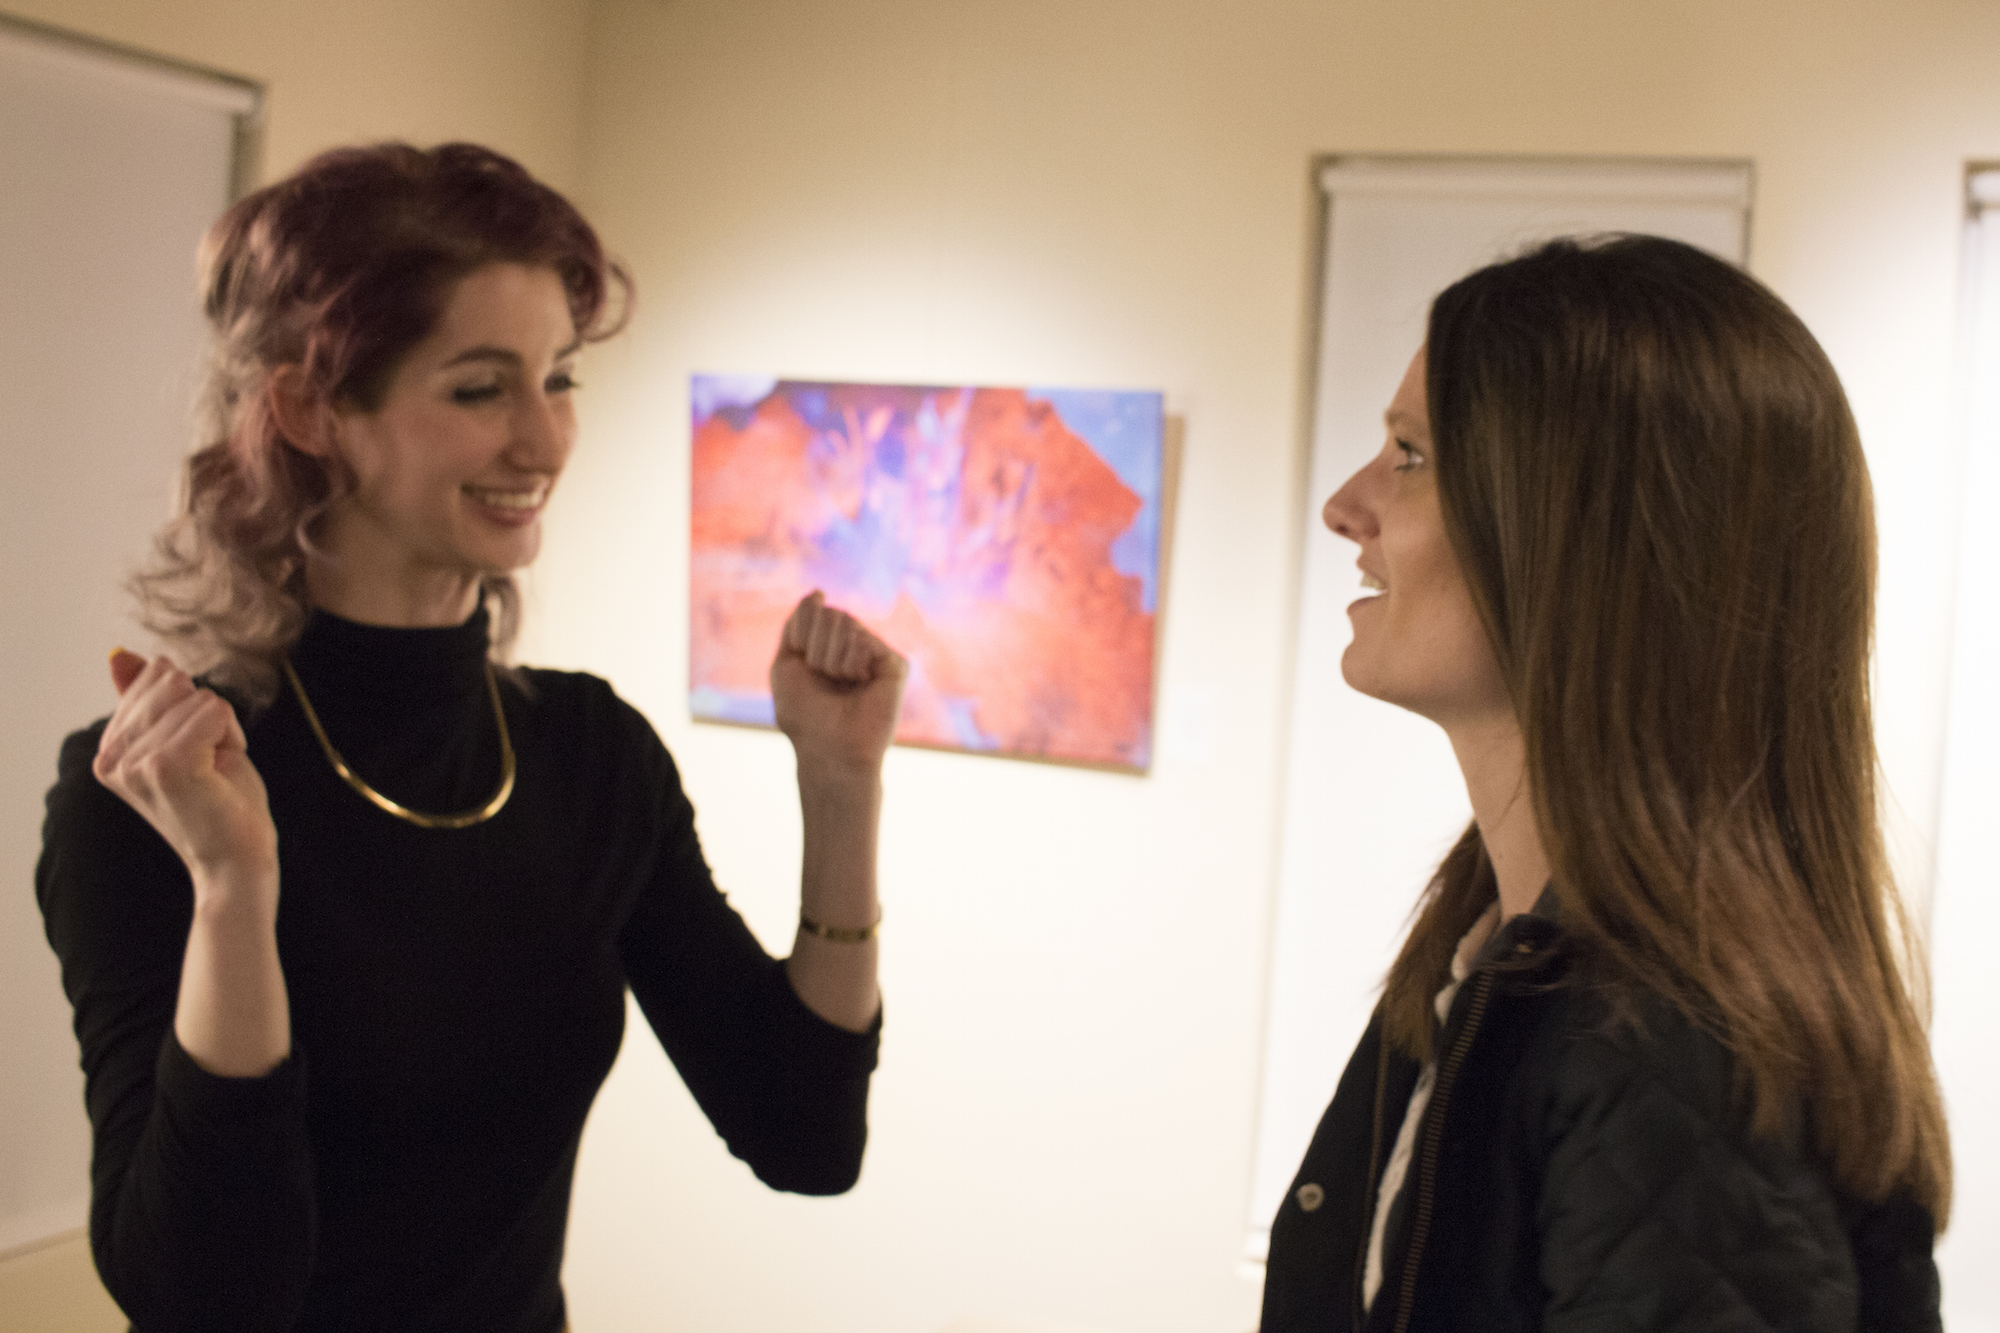 Excitement at Geena Matuson's solo show reception at Medfield TV. April, 2016.